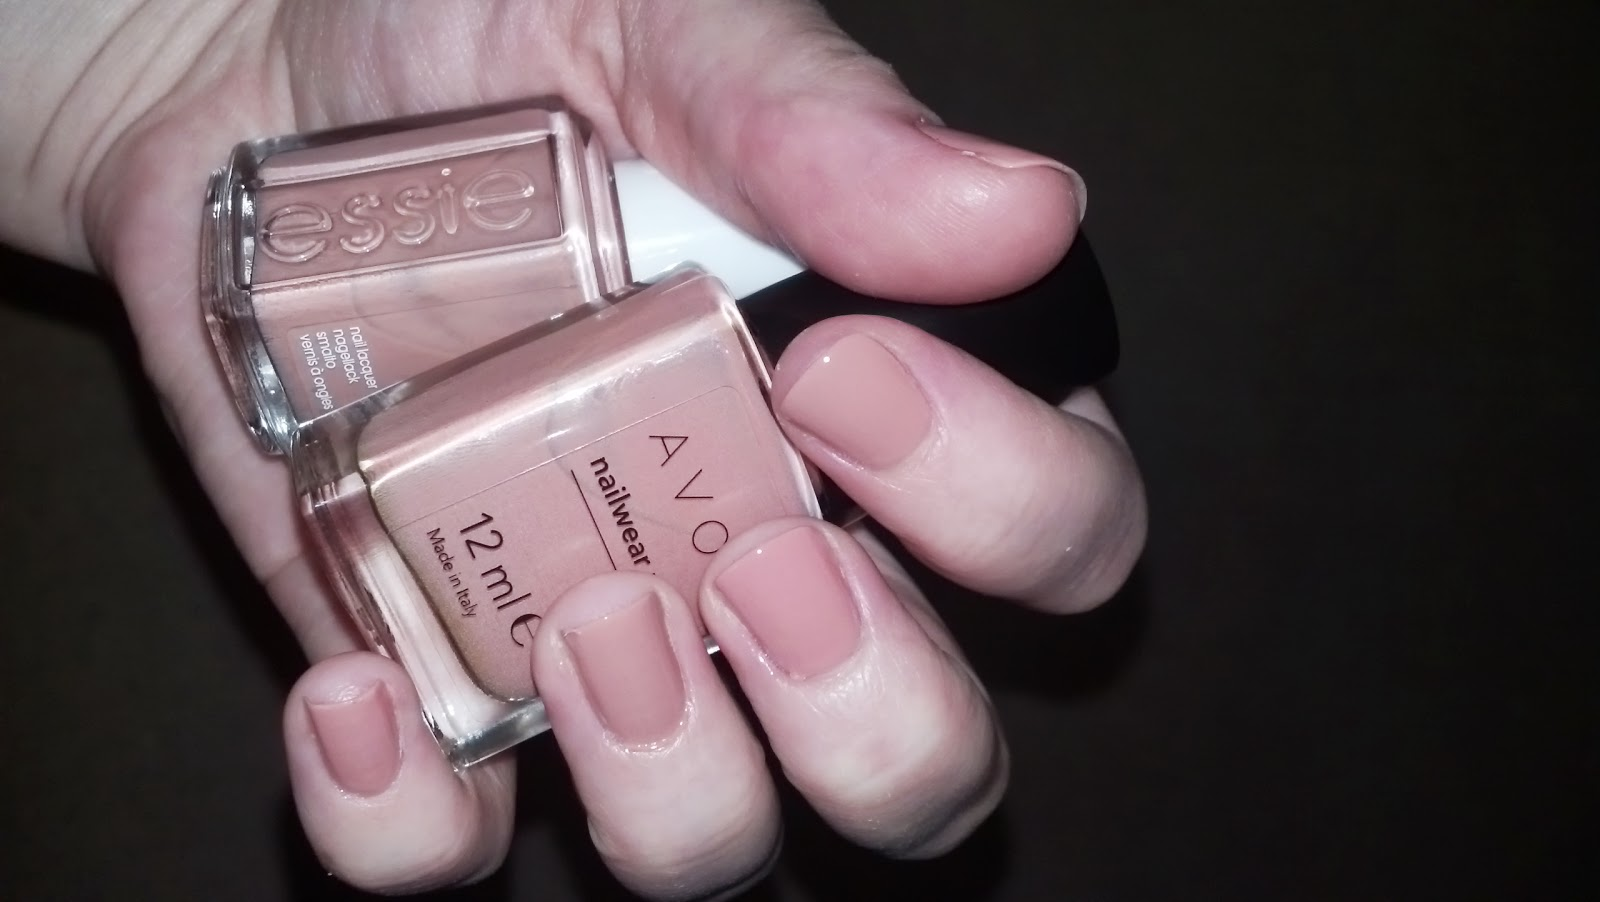 Avon Perfectly Flesh - Incredible dupe for Essie Eternal OptimistEssie Eternal Optimist Dupe